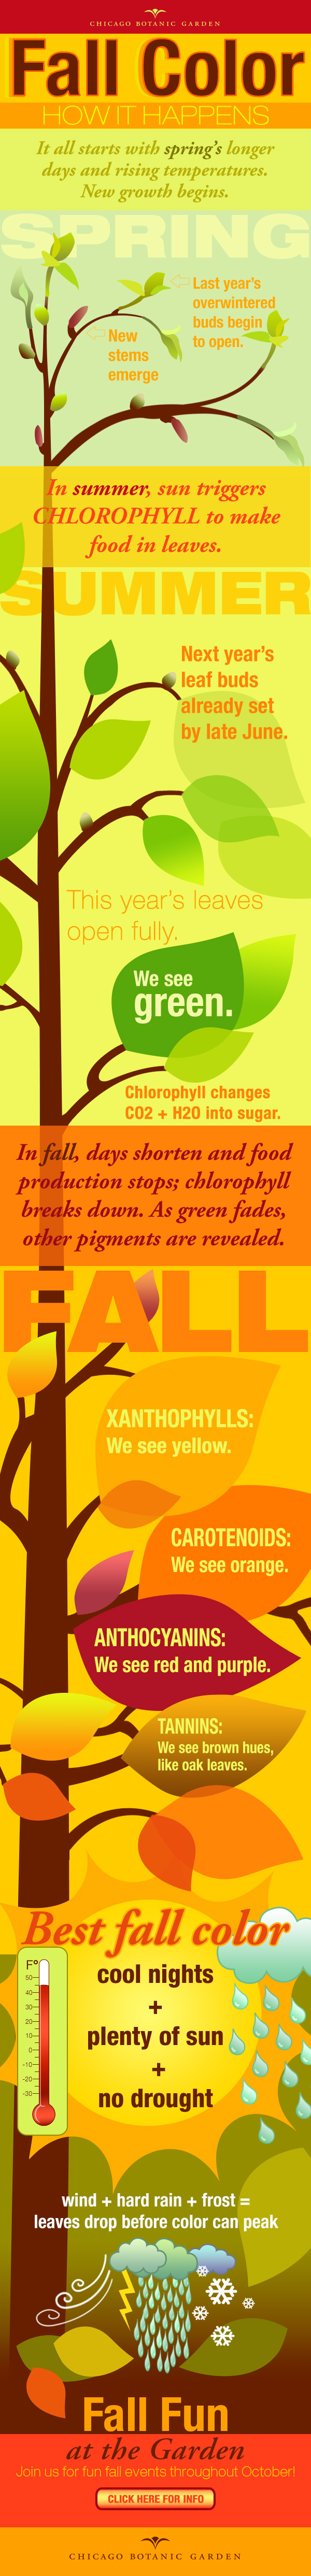 Infographic about Fall Color